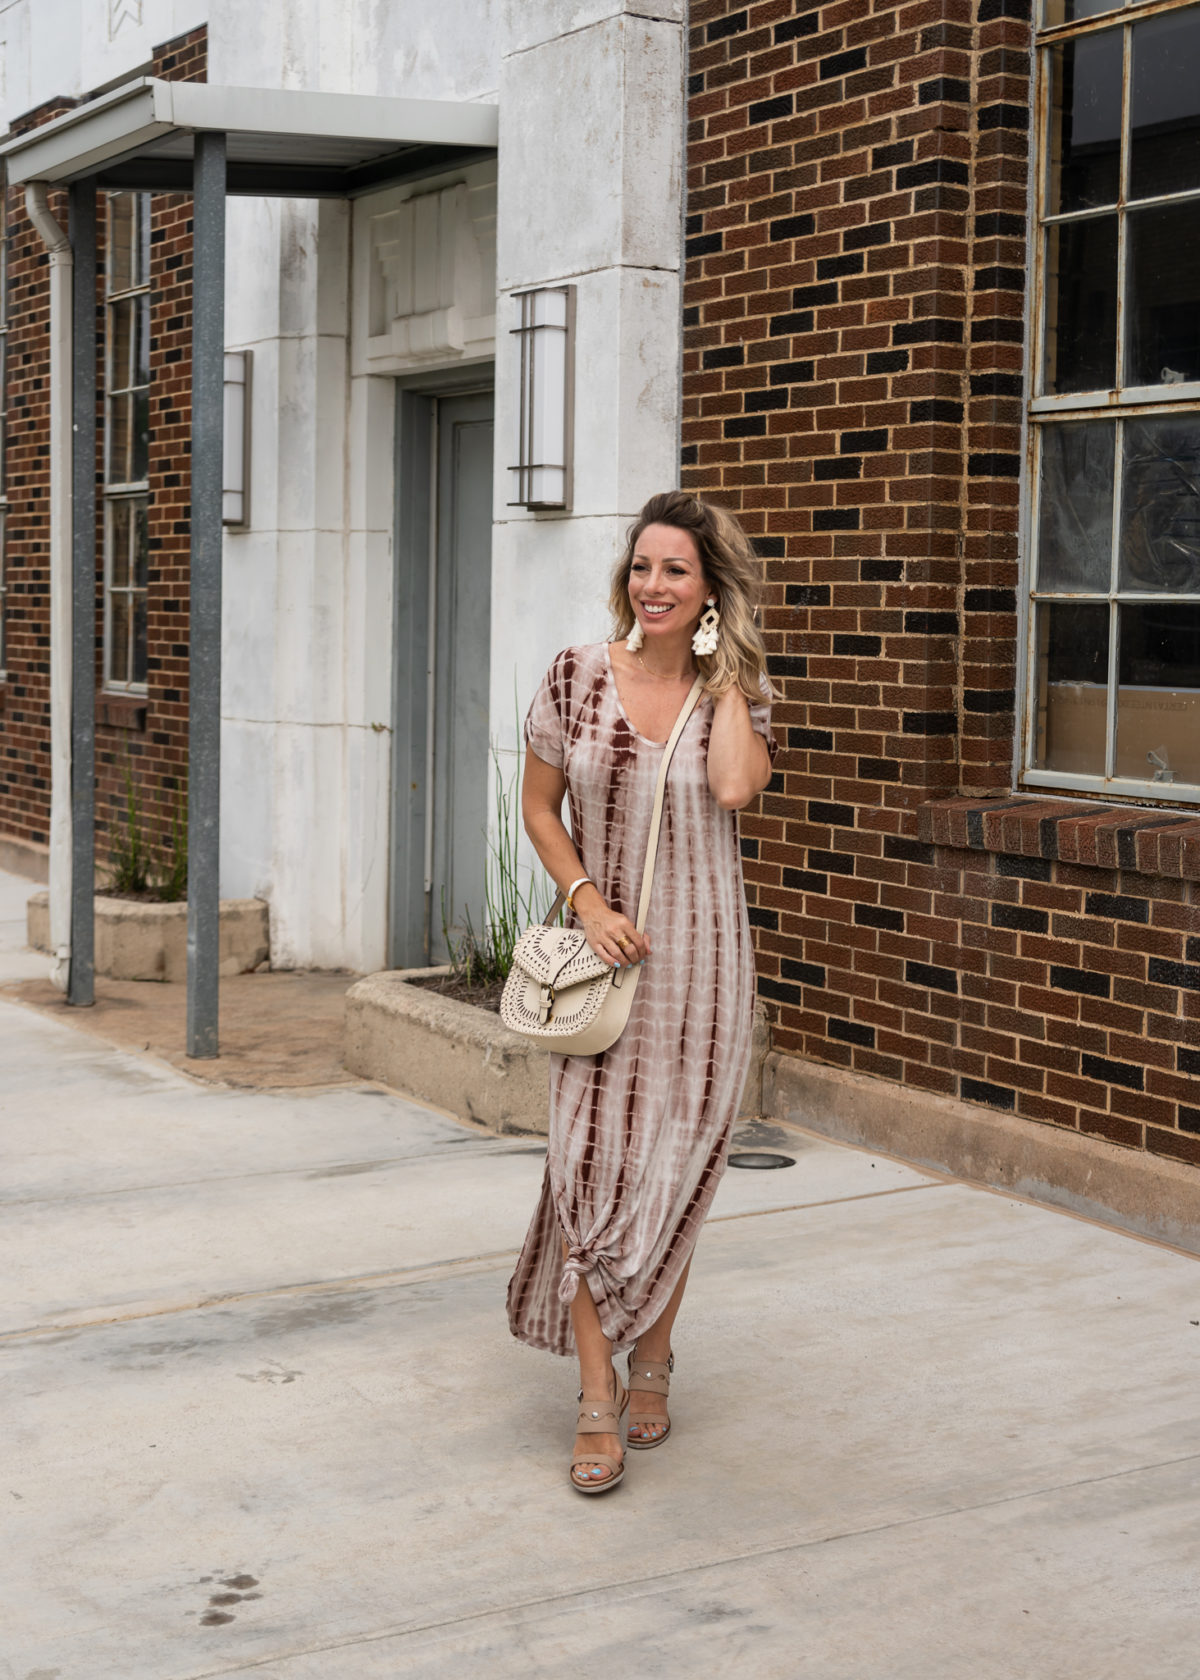 Amazon Fashion Prime Day Haul - tie dye maxi dress